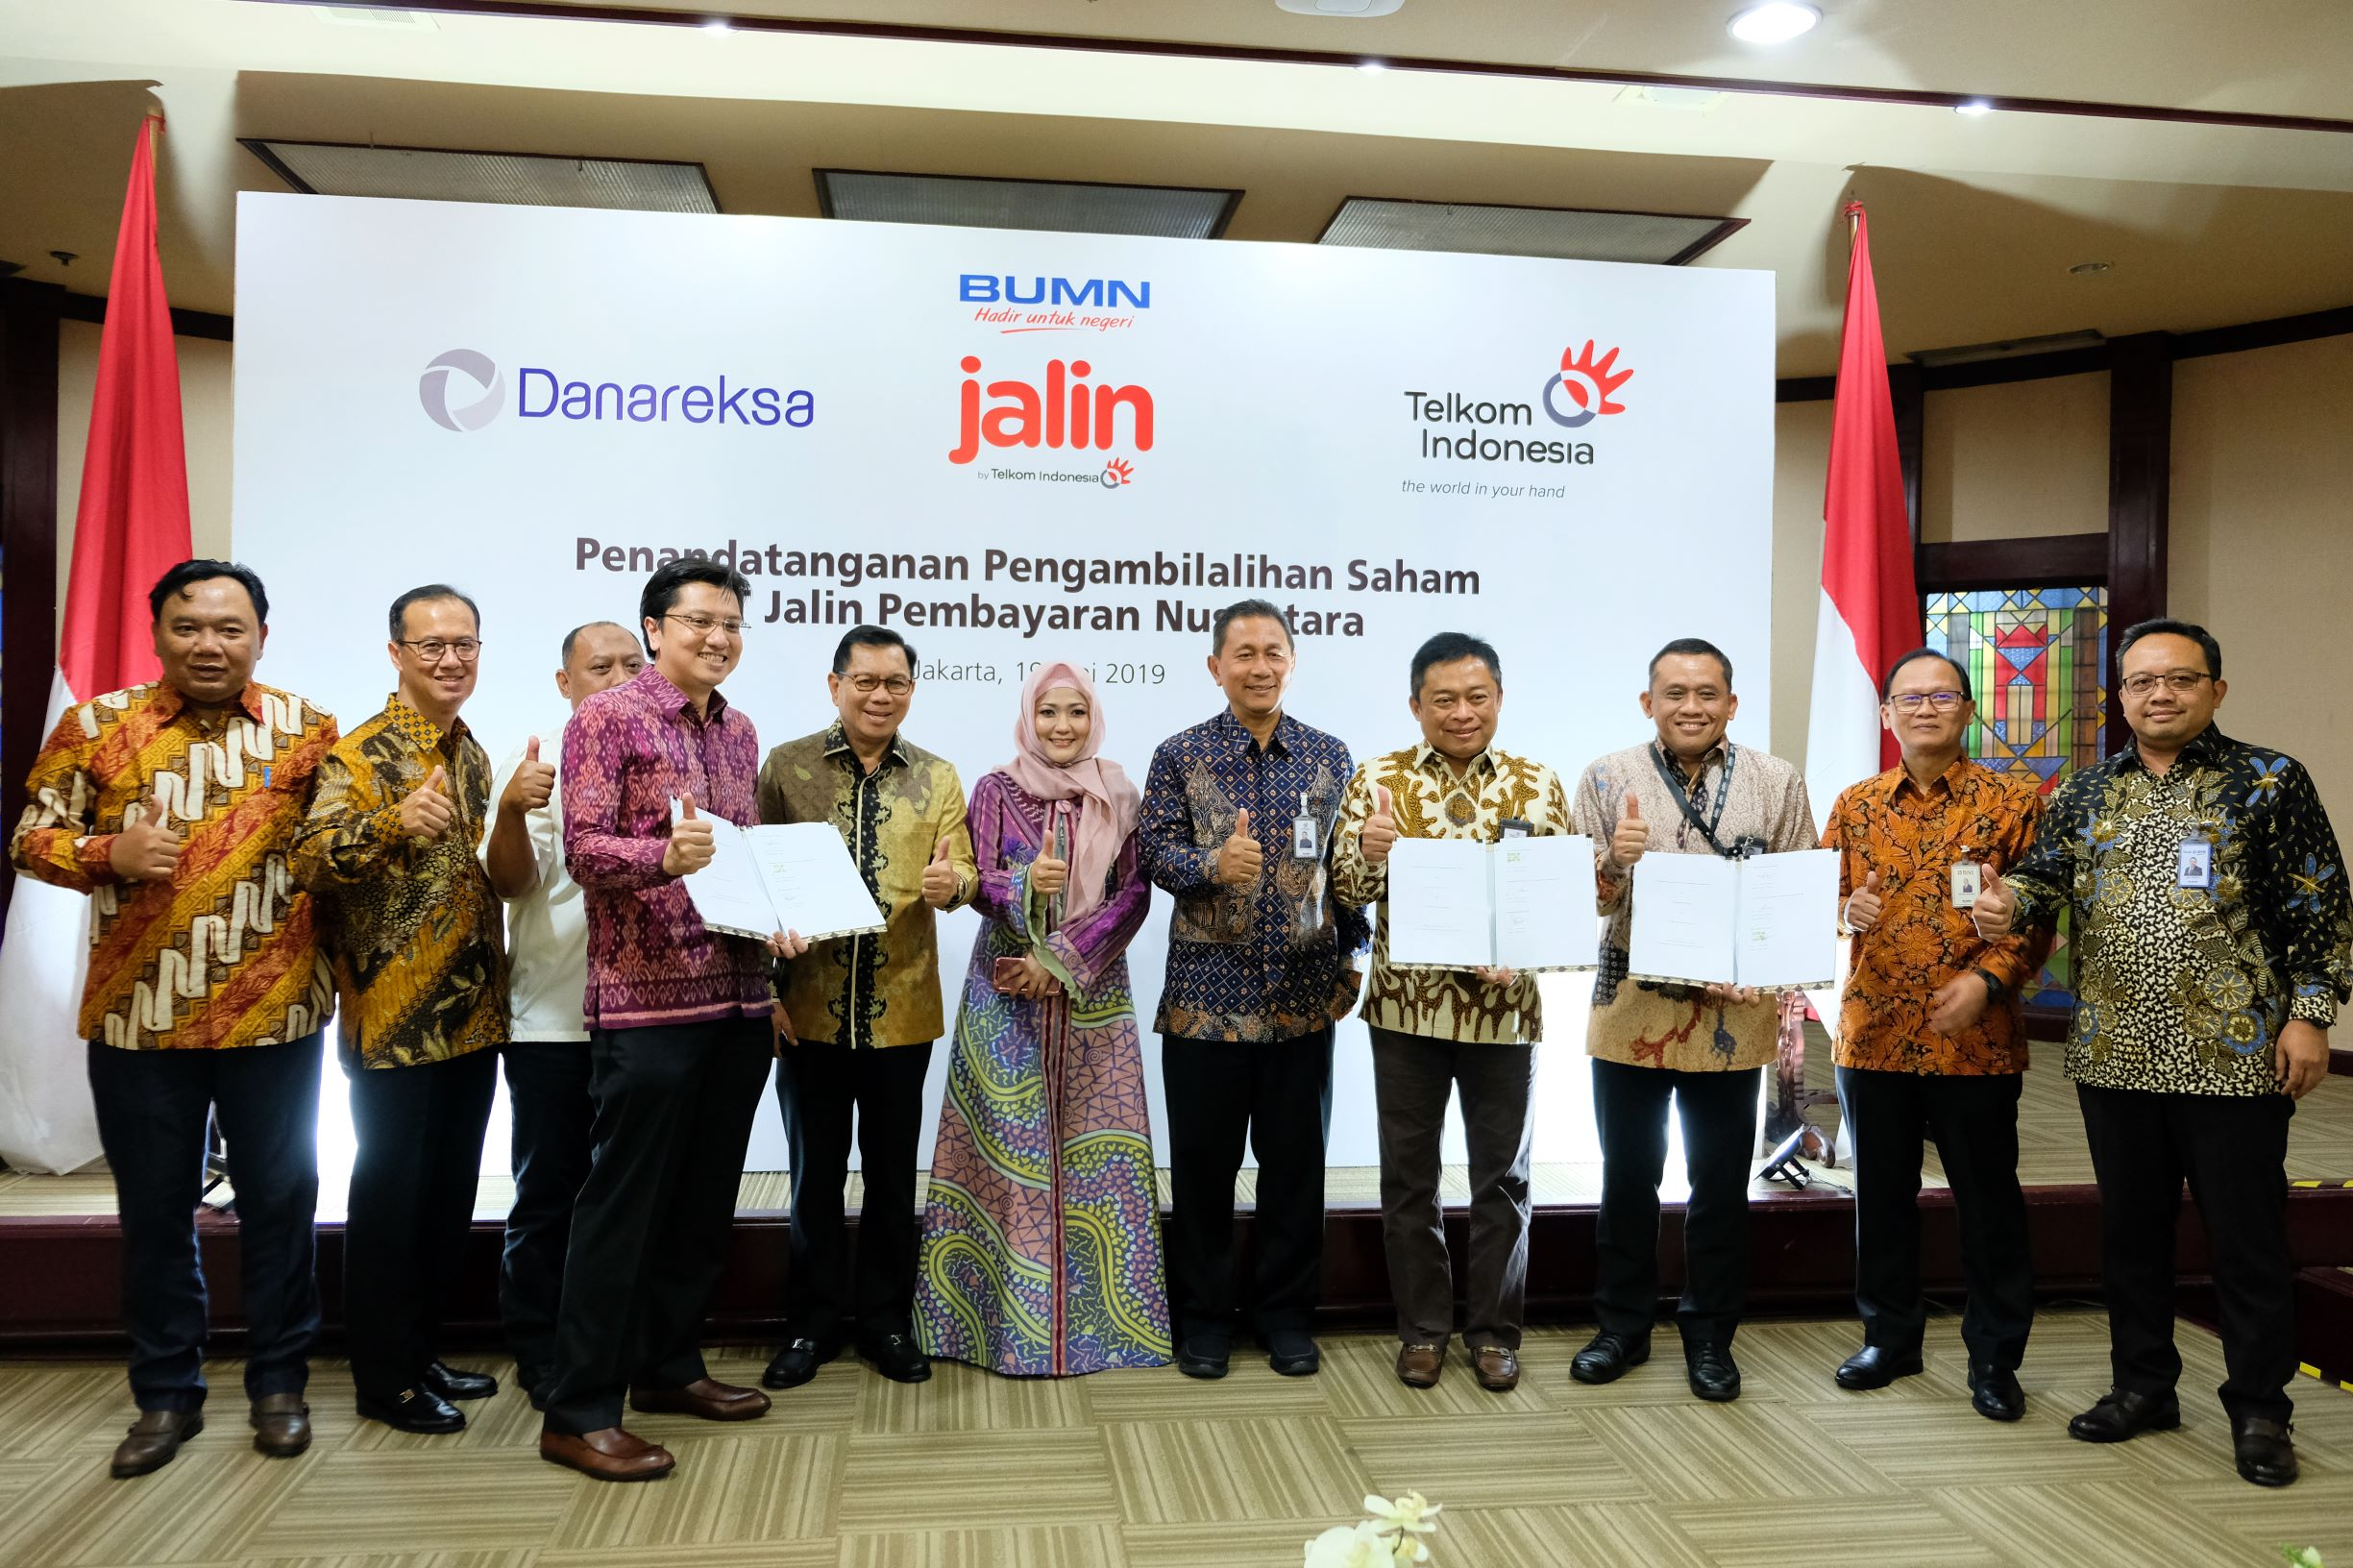 Danareksa Acquires Majority Share of Jalin Pembayaran Nusantara